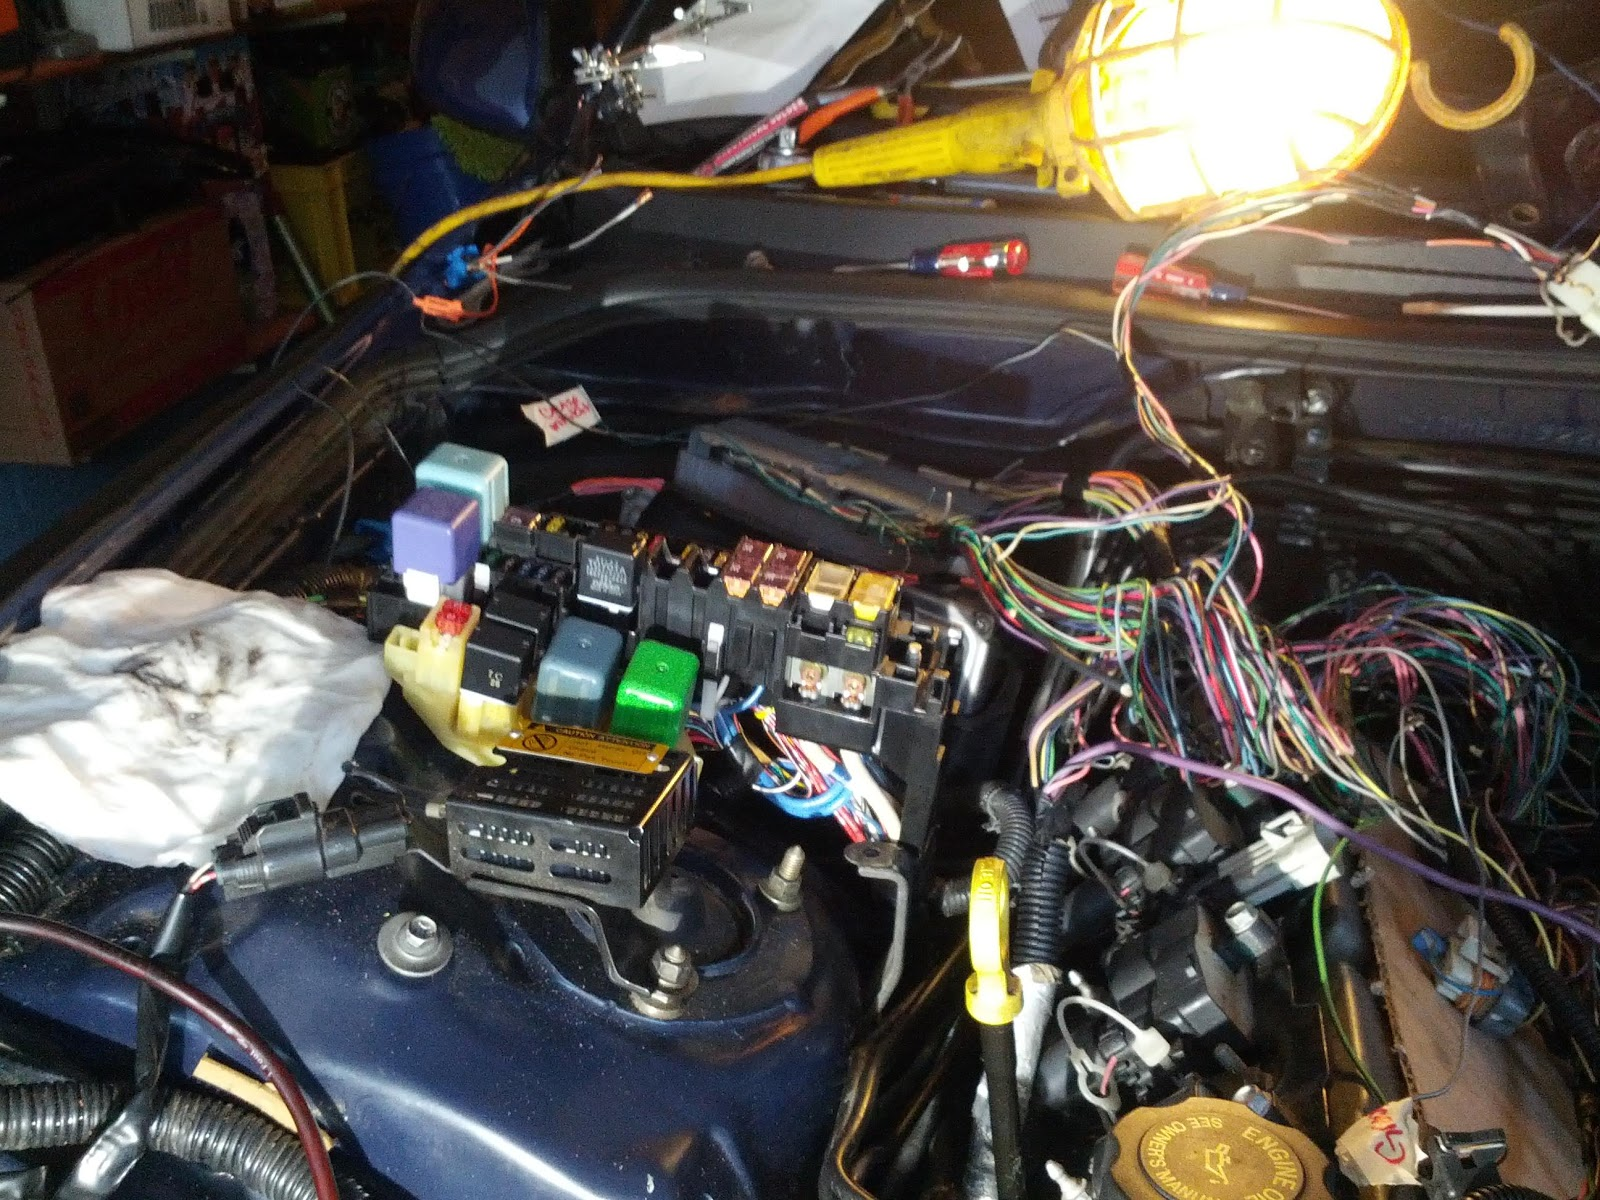 Is300 Ls1 T56 Daily Driver Build By Eng1nerd Lexus Is Xe10 Wiring Harness And Ecu For I Think The Only Things Left To Do Are Hook Up 12v Constant Back Lights Which Have No Ideas How